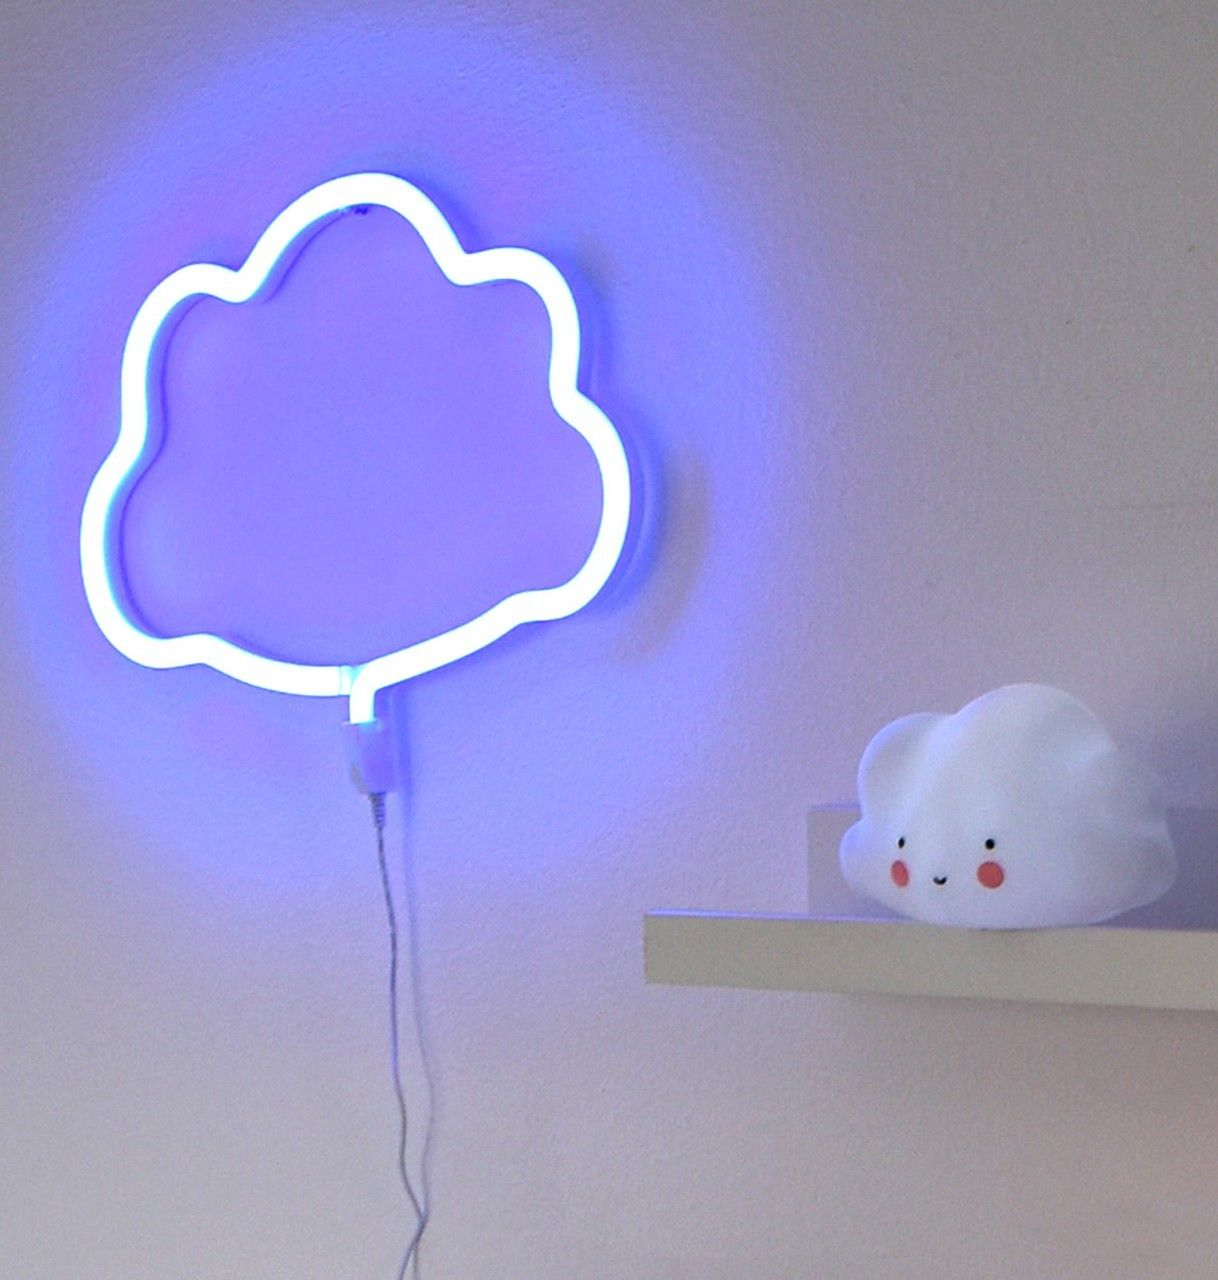 Lampe Wolke A Little Lovely Company Lampe Neon Style Light Wolke Blau